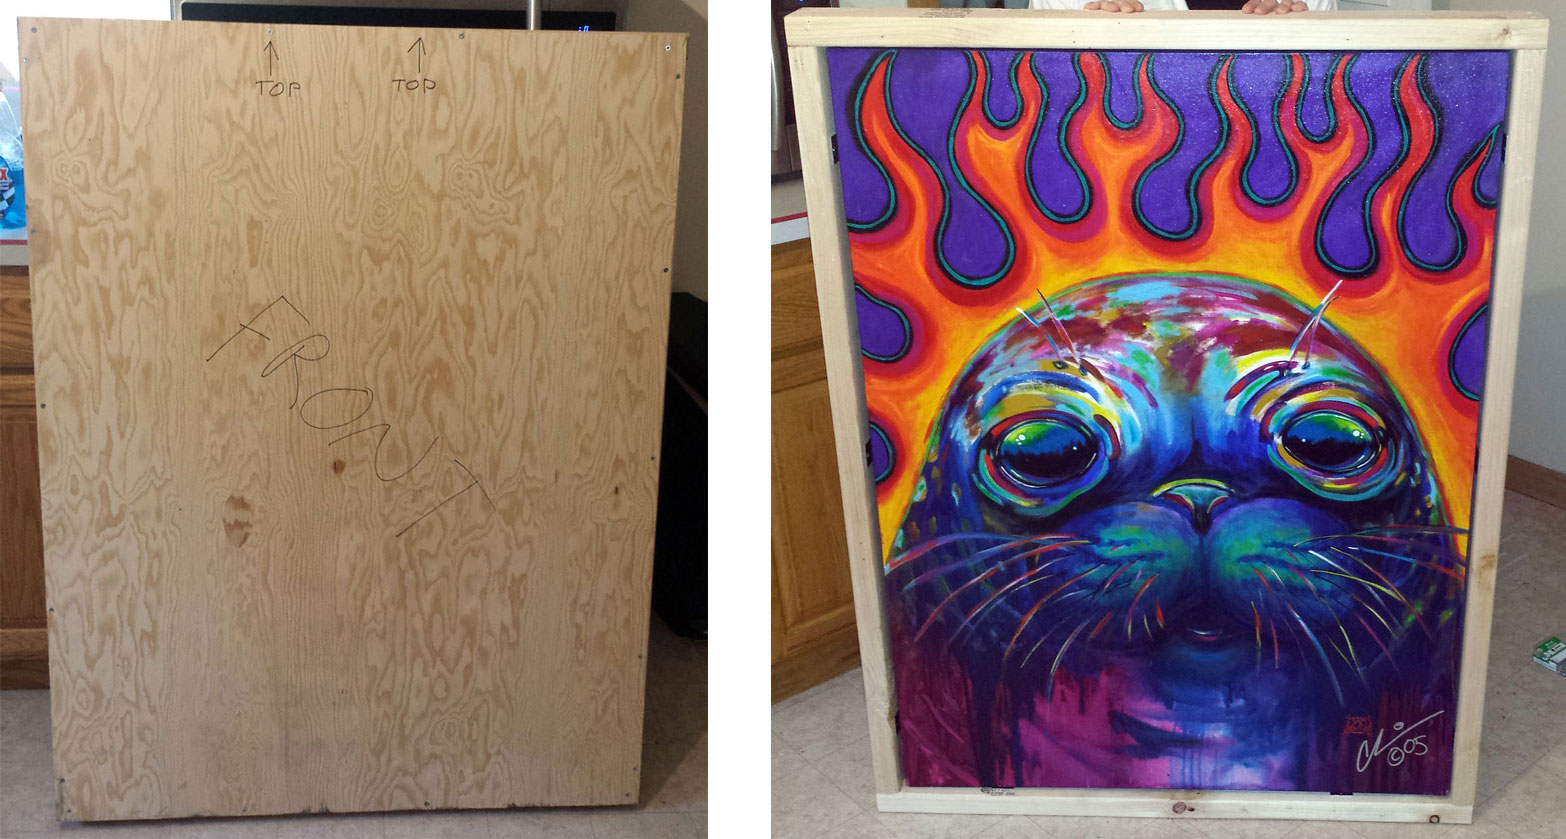 Flaming Seal Painting Artwork Package Wood Crate Ship